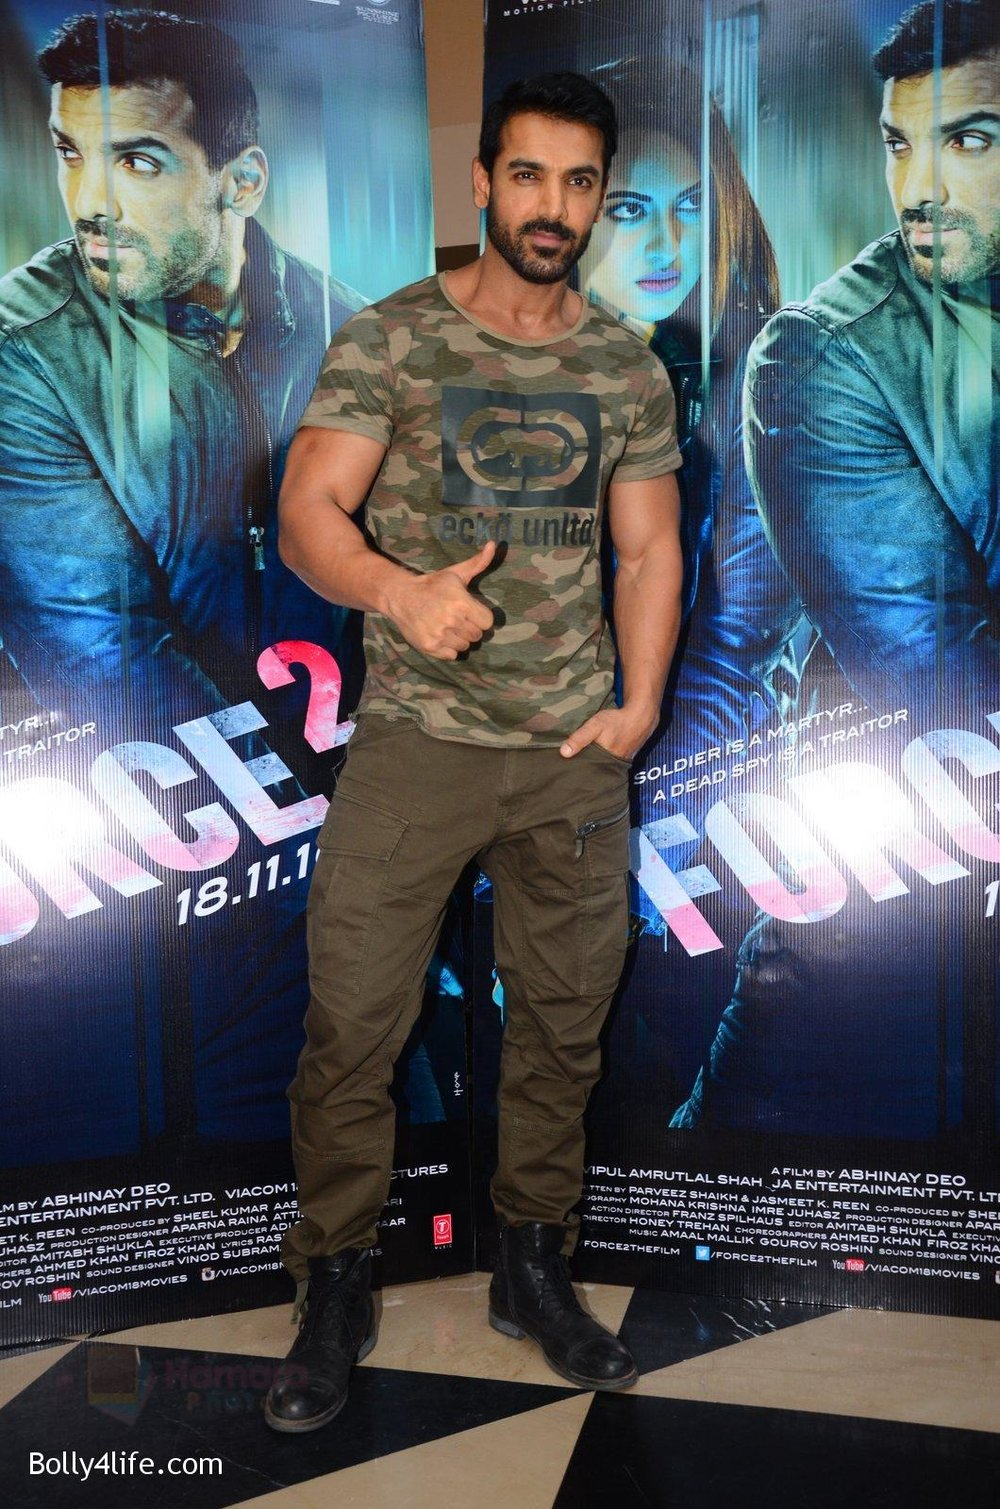 John-Abraham-at-Force-2-trailer-launch-in-Mumbai-on-29th-Sept-2016-326.jpg